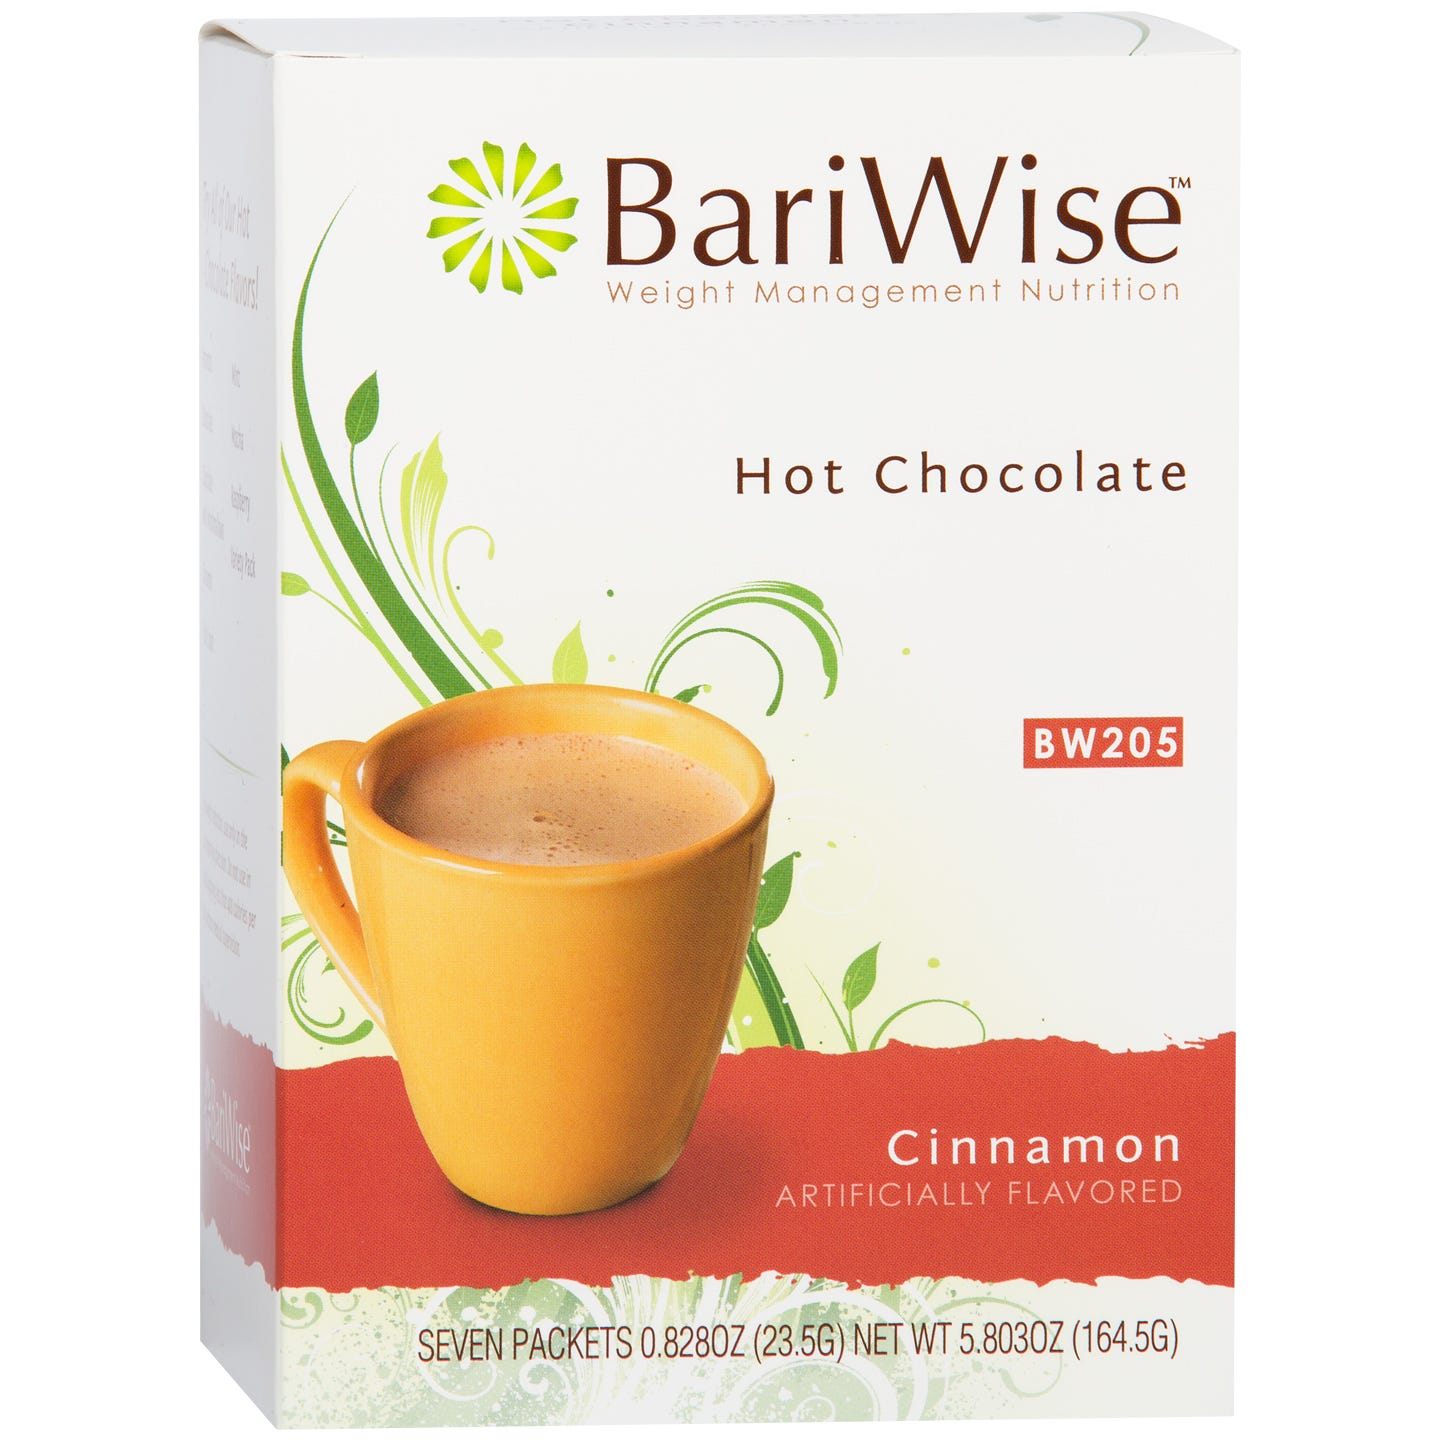 Protein Diet Hot Chocolate Cinnamon (7 ct) - BariWise - Rapid Diet Weight Loss Products Shop